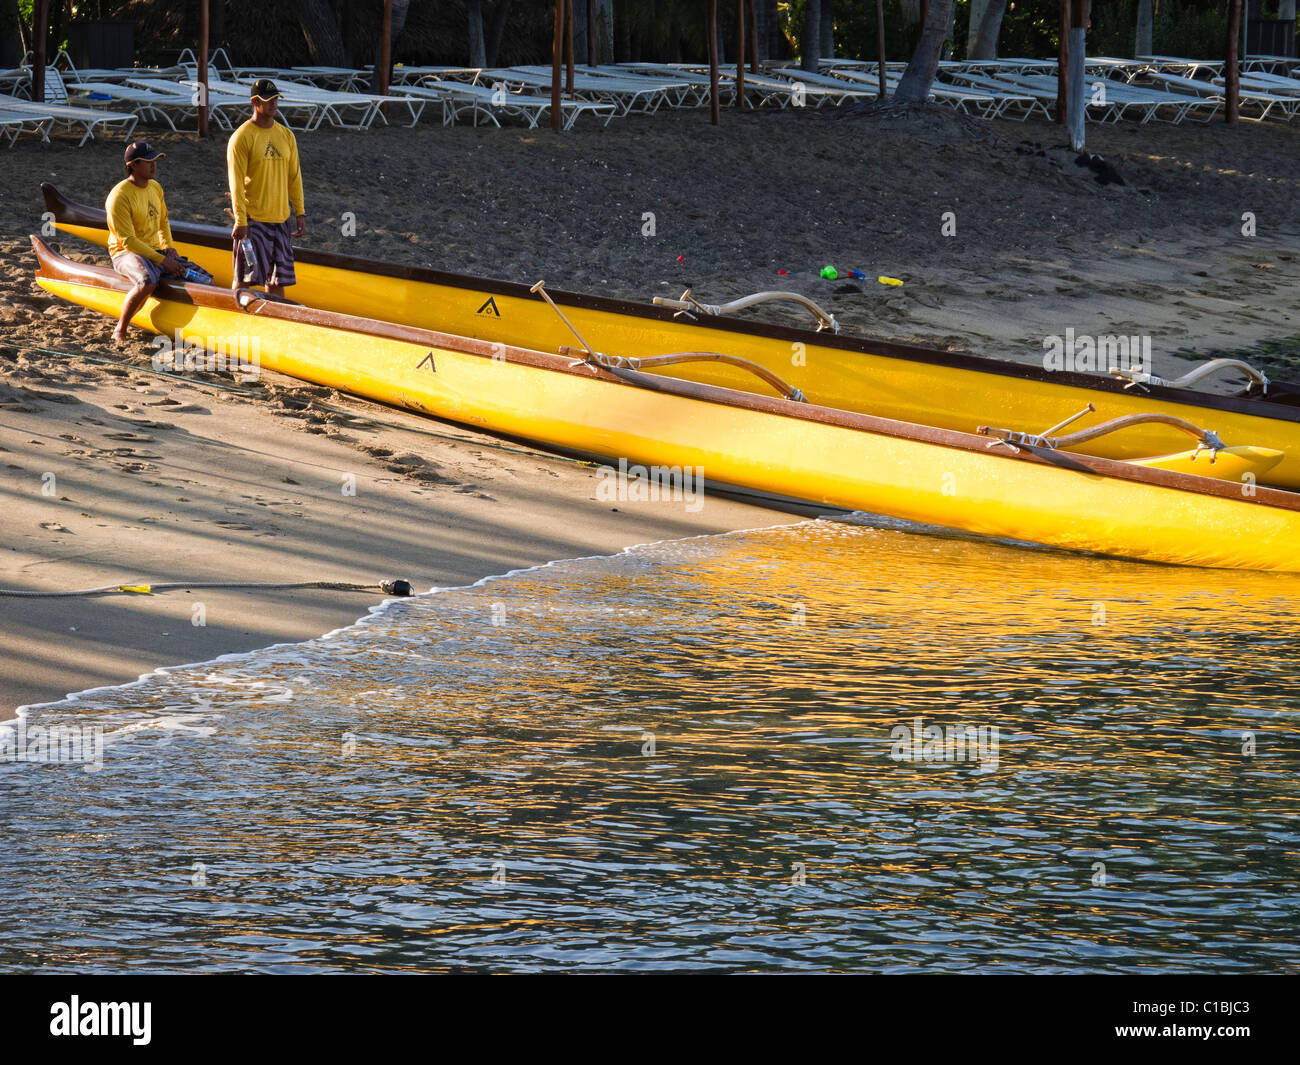 Beach boys by an outrigger canoe at Kona Village in Hawaii. - Stock Image